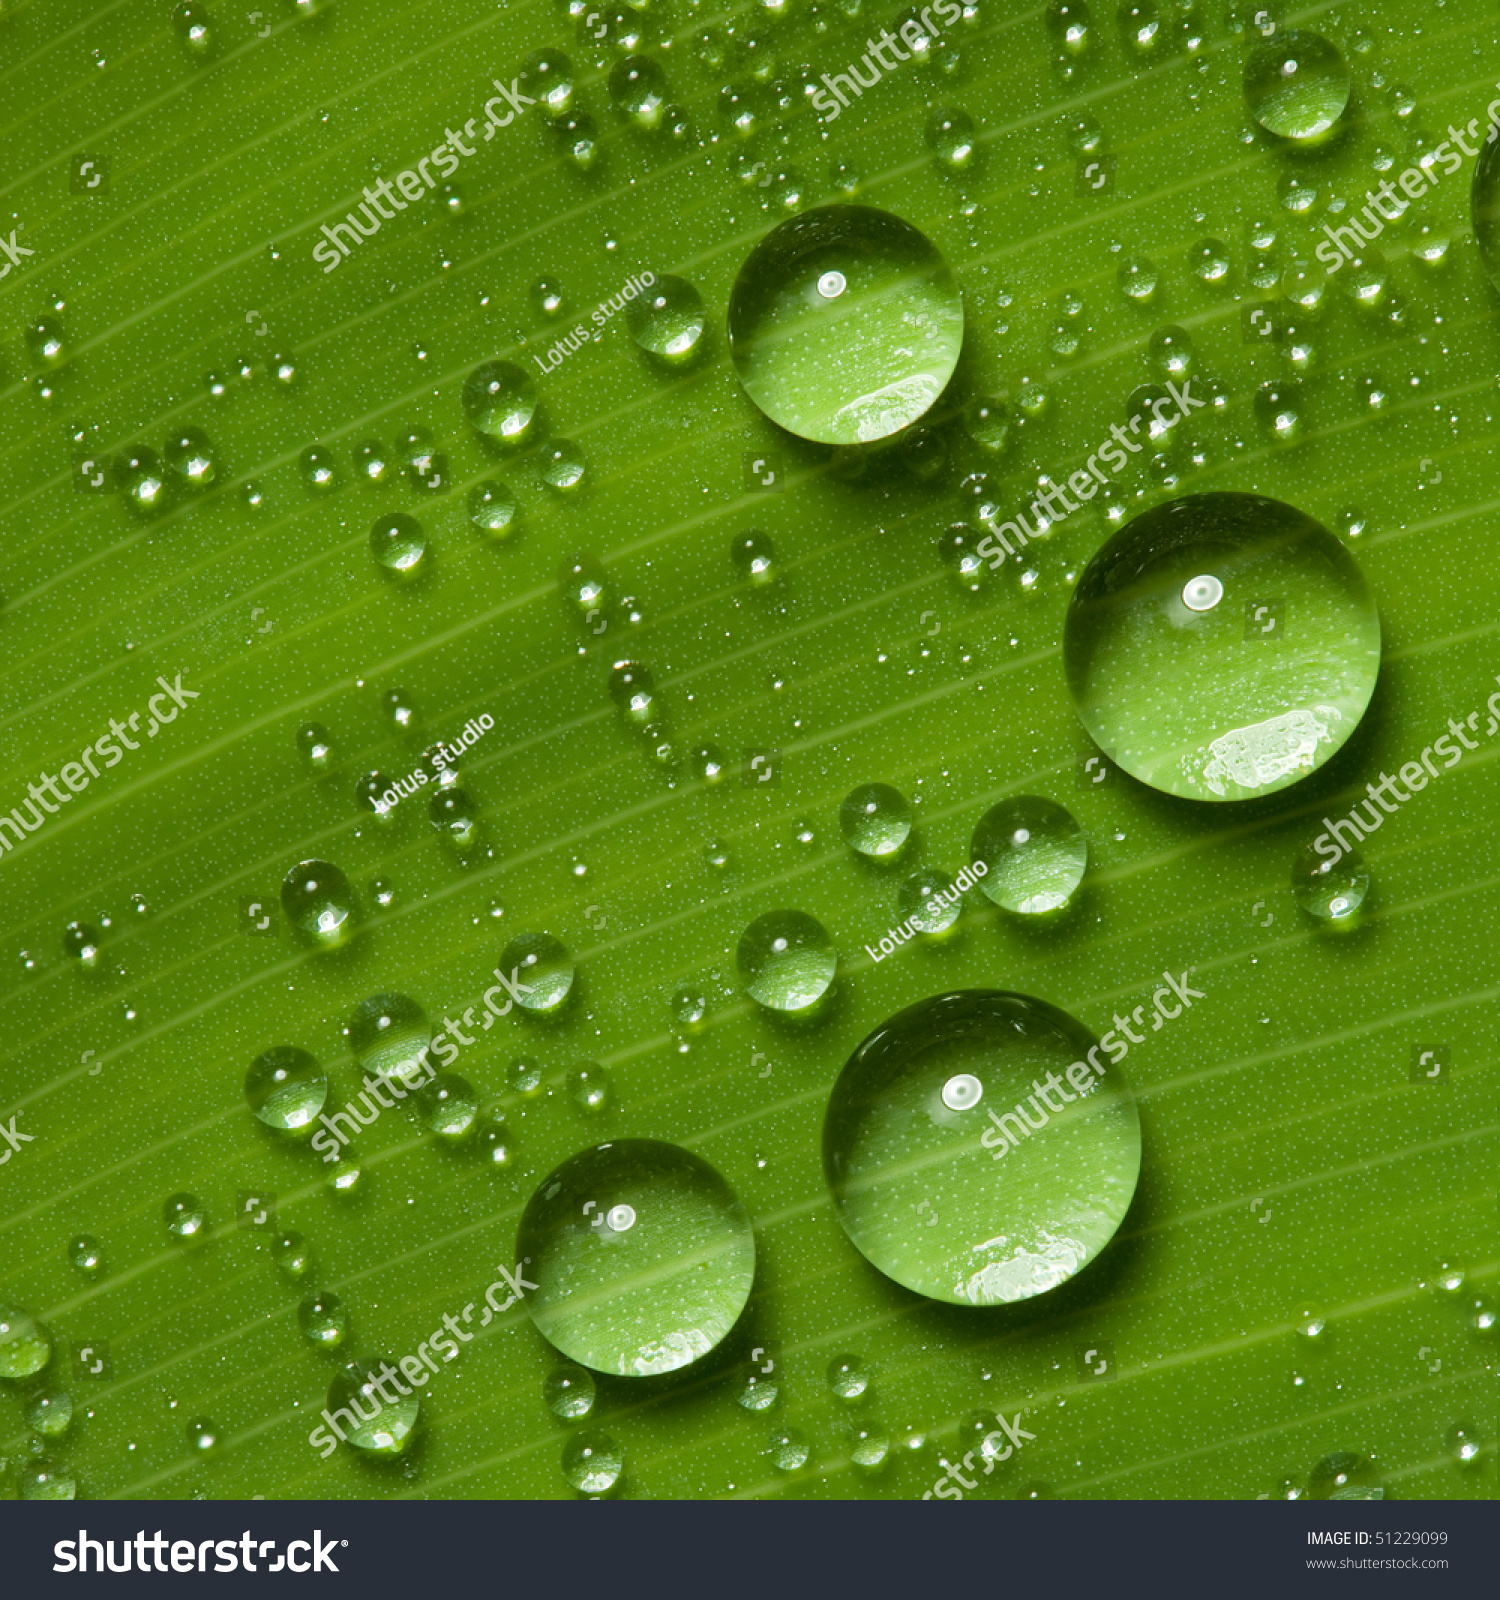 Water Drops On Fresh Green Leaf, Isolated On White Stock